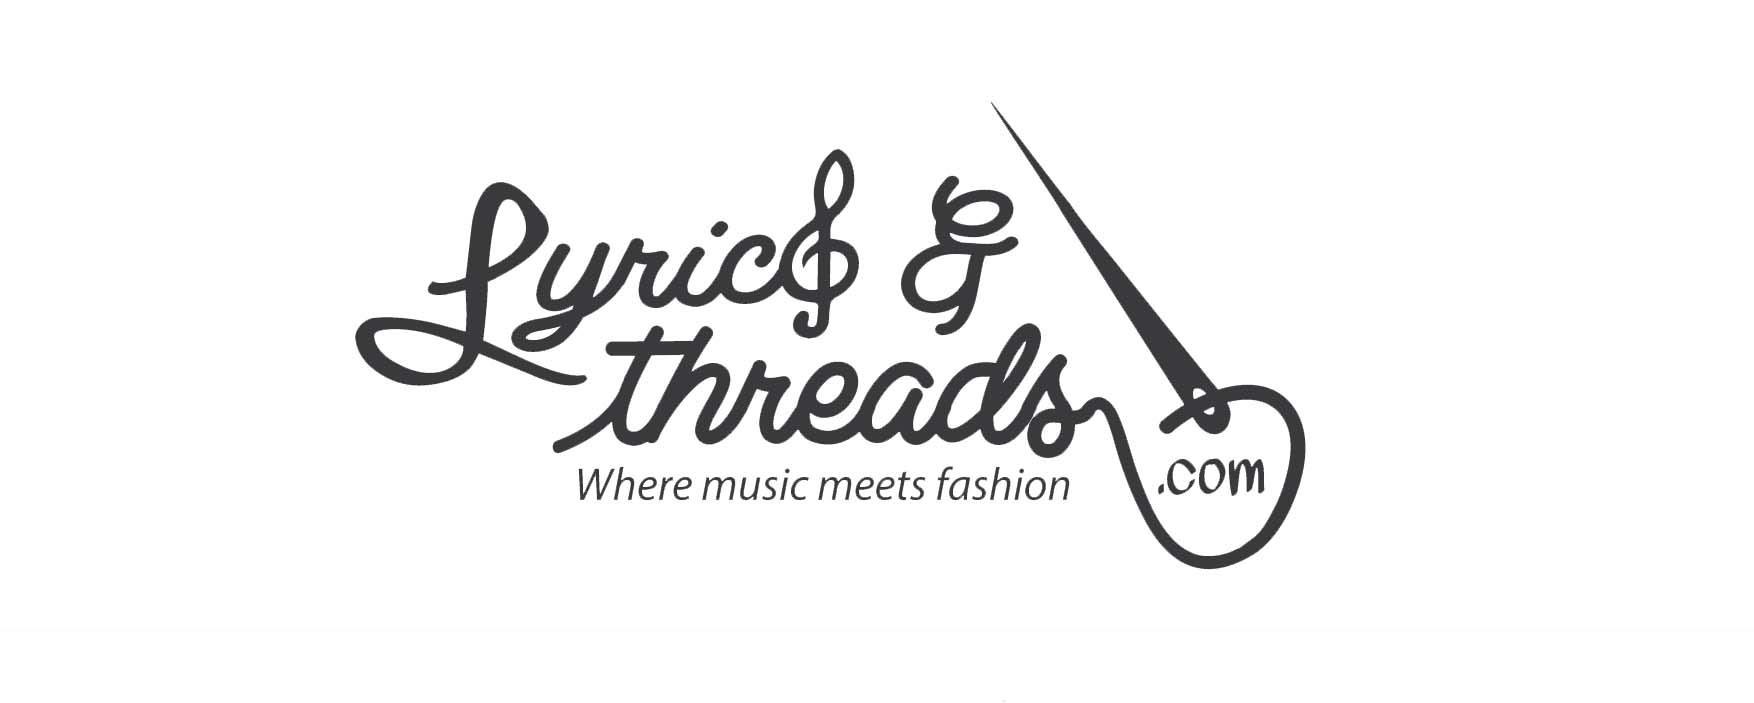 Lyrics & Threads